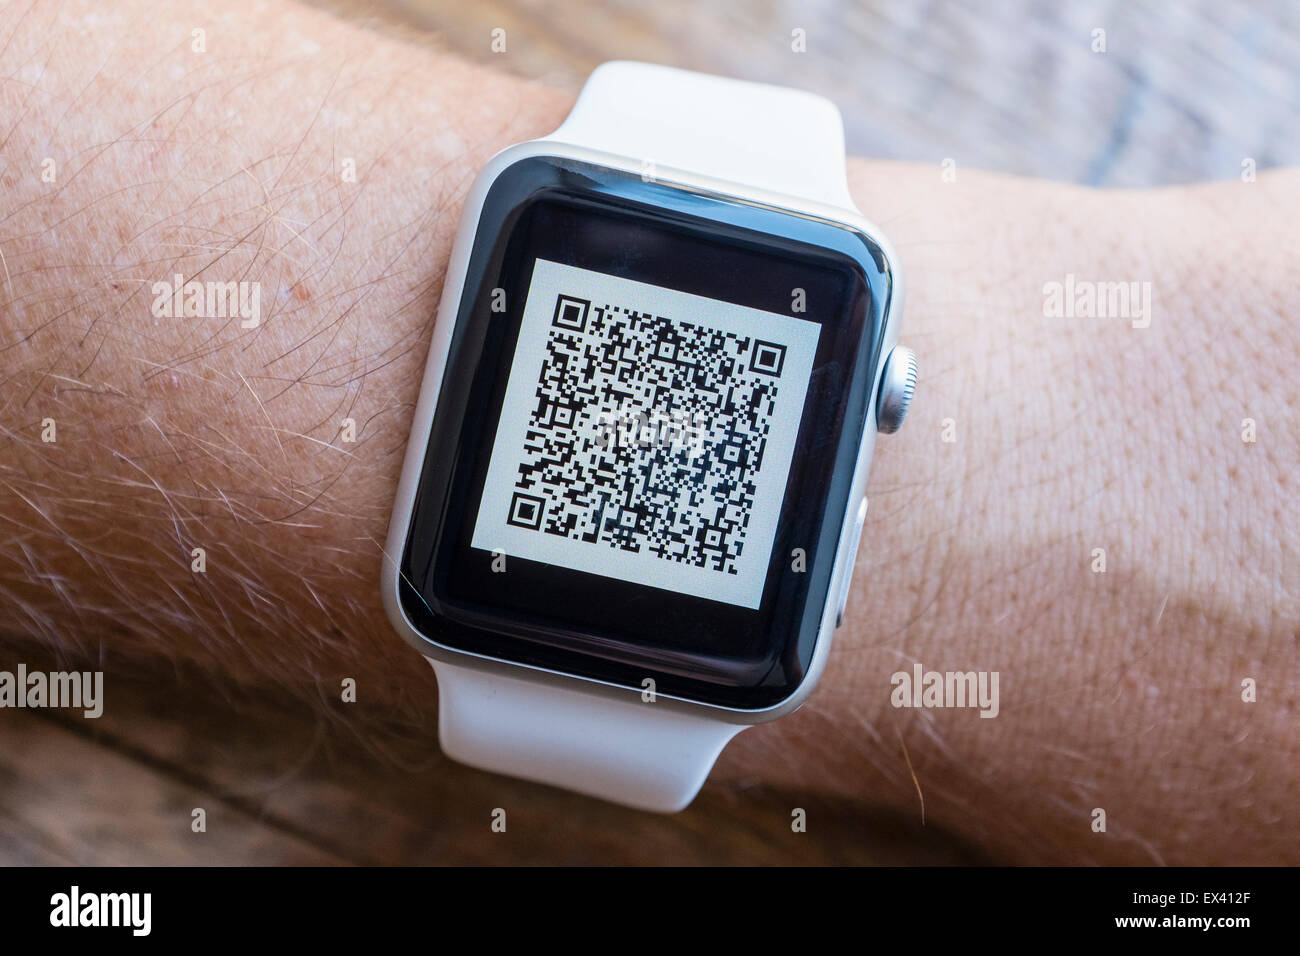 Airline passenger boarding pass barcode on an Apple Watch - Stock Image